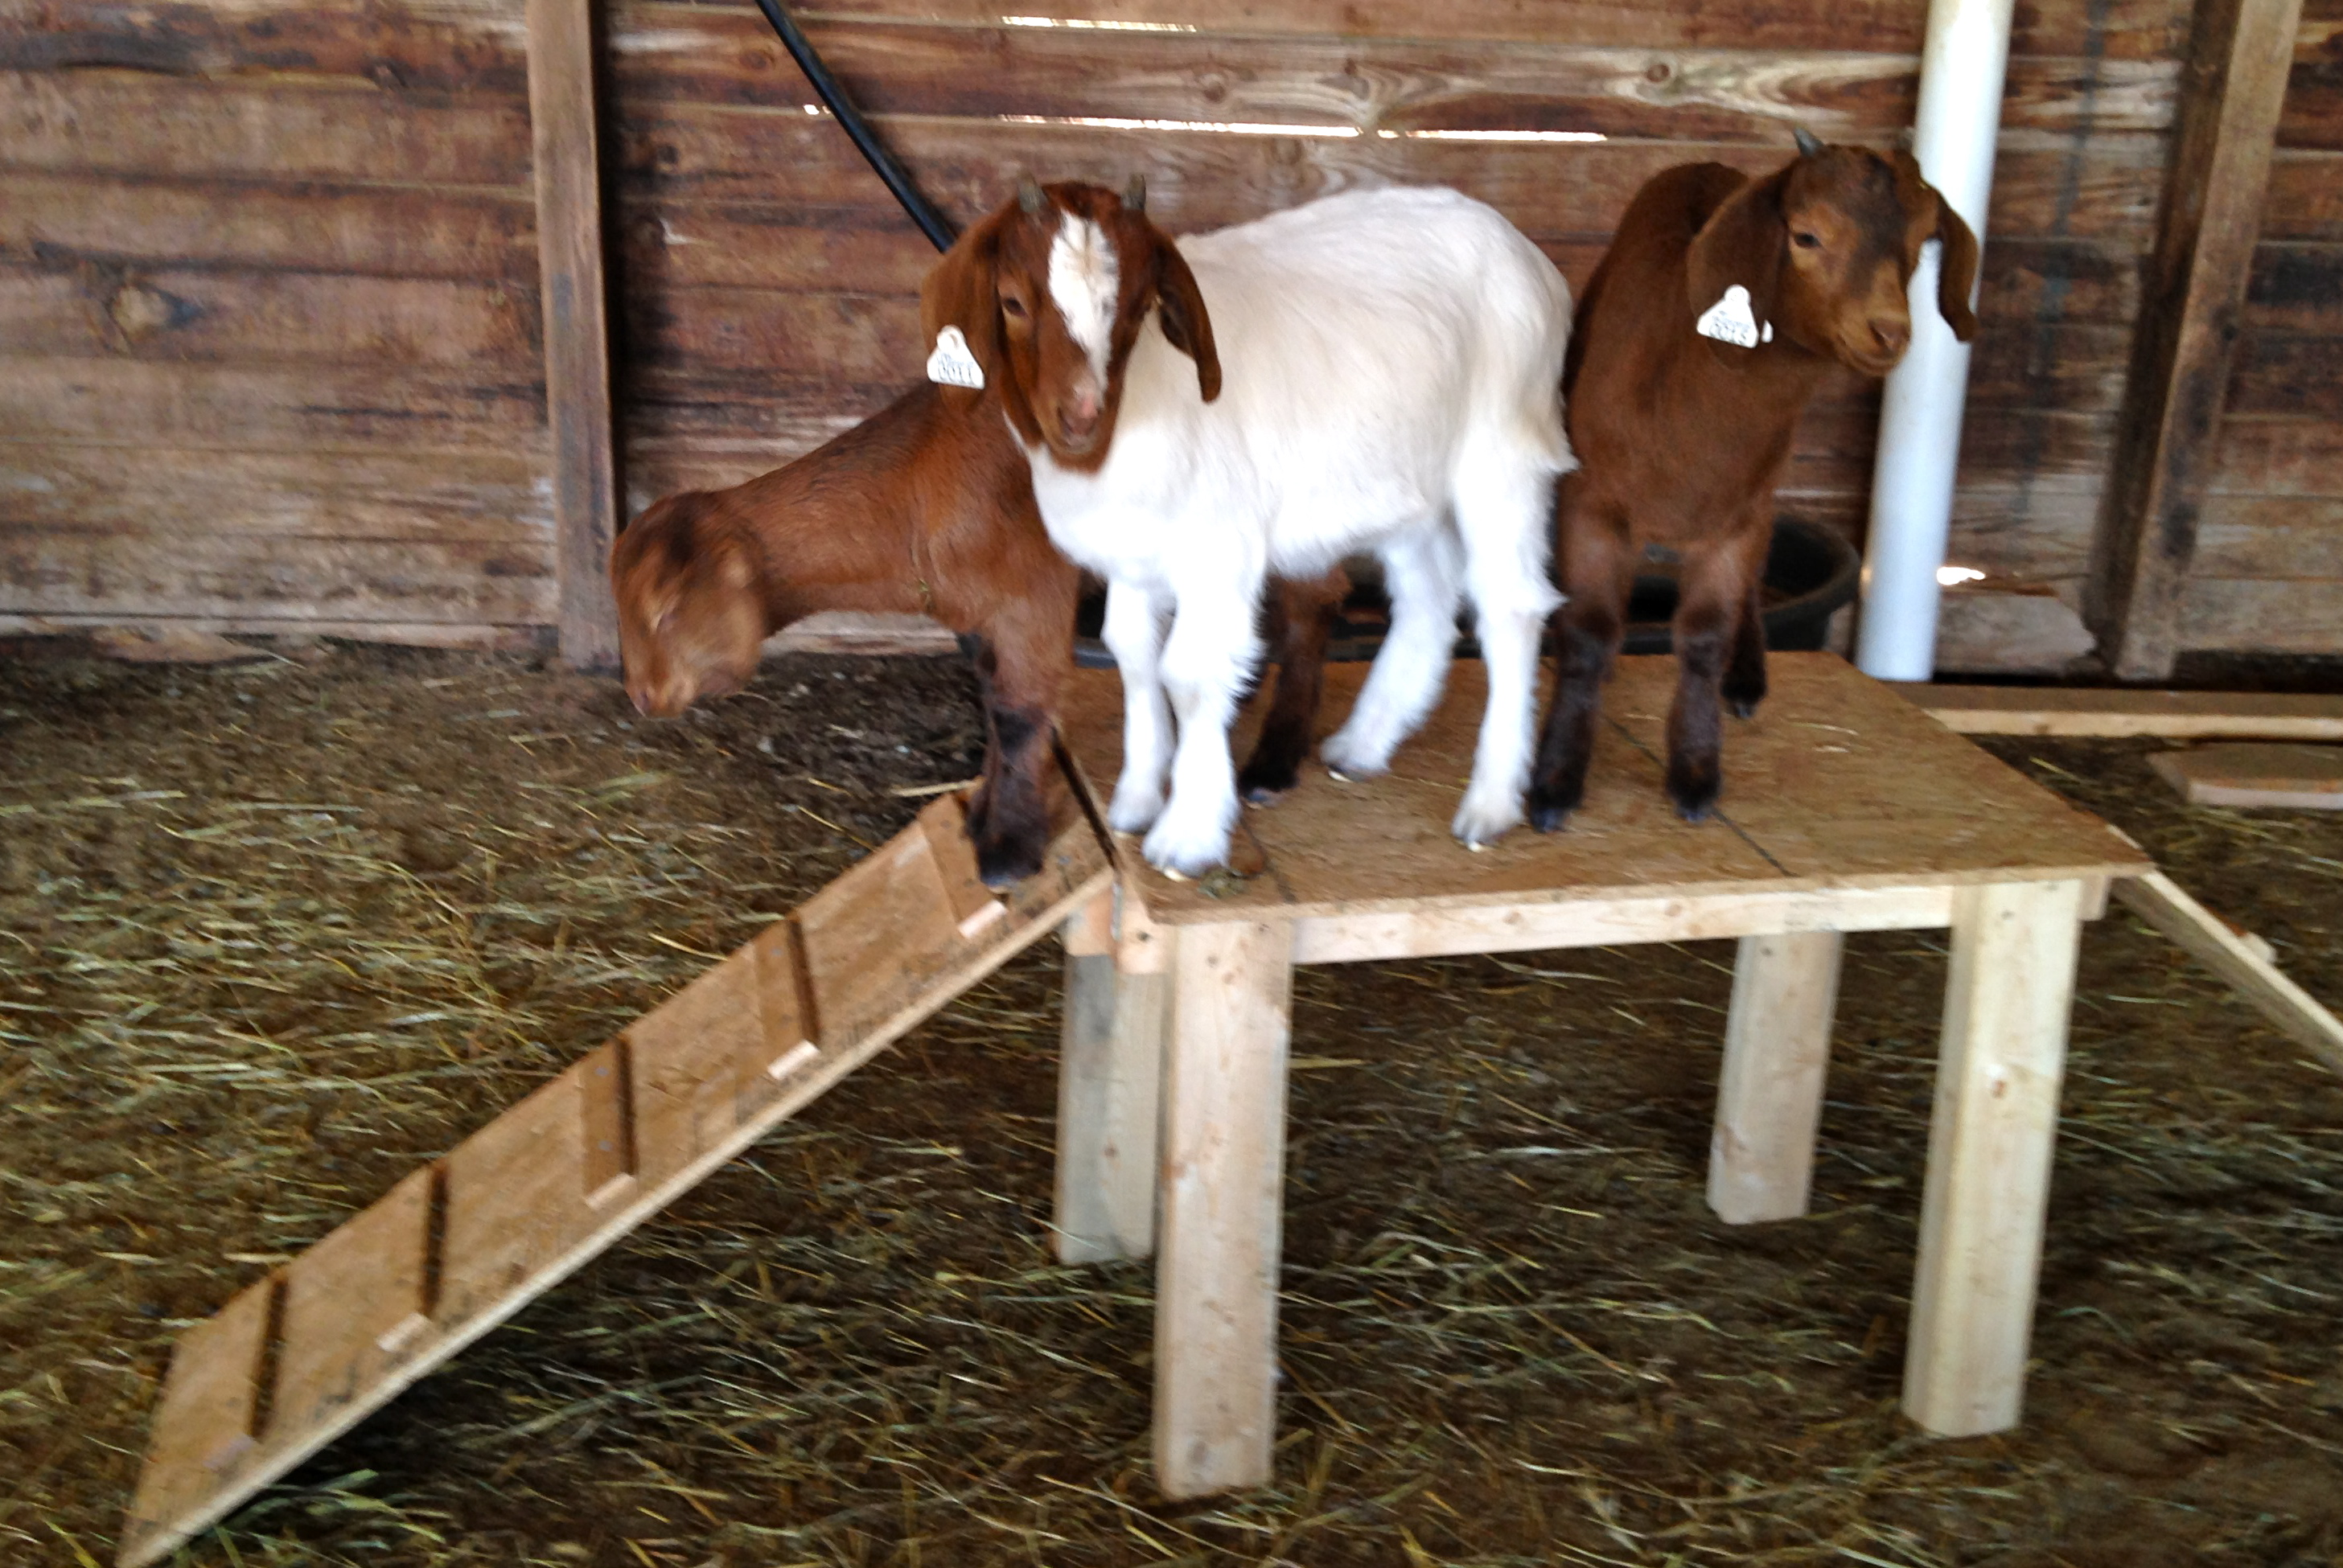 google goat feeder for goats feeders got round pinterest grain search hay pallets bale pin